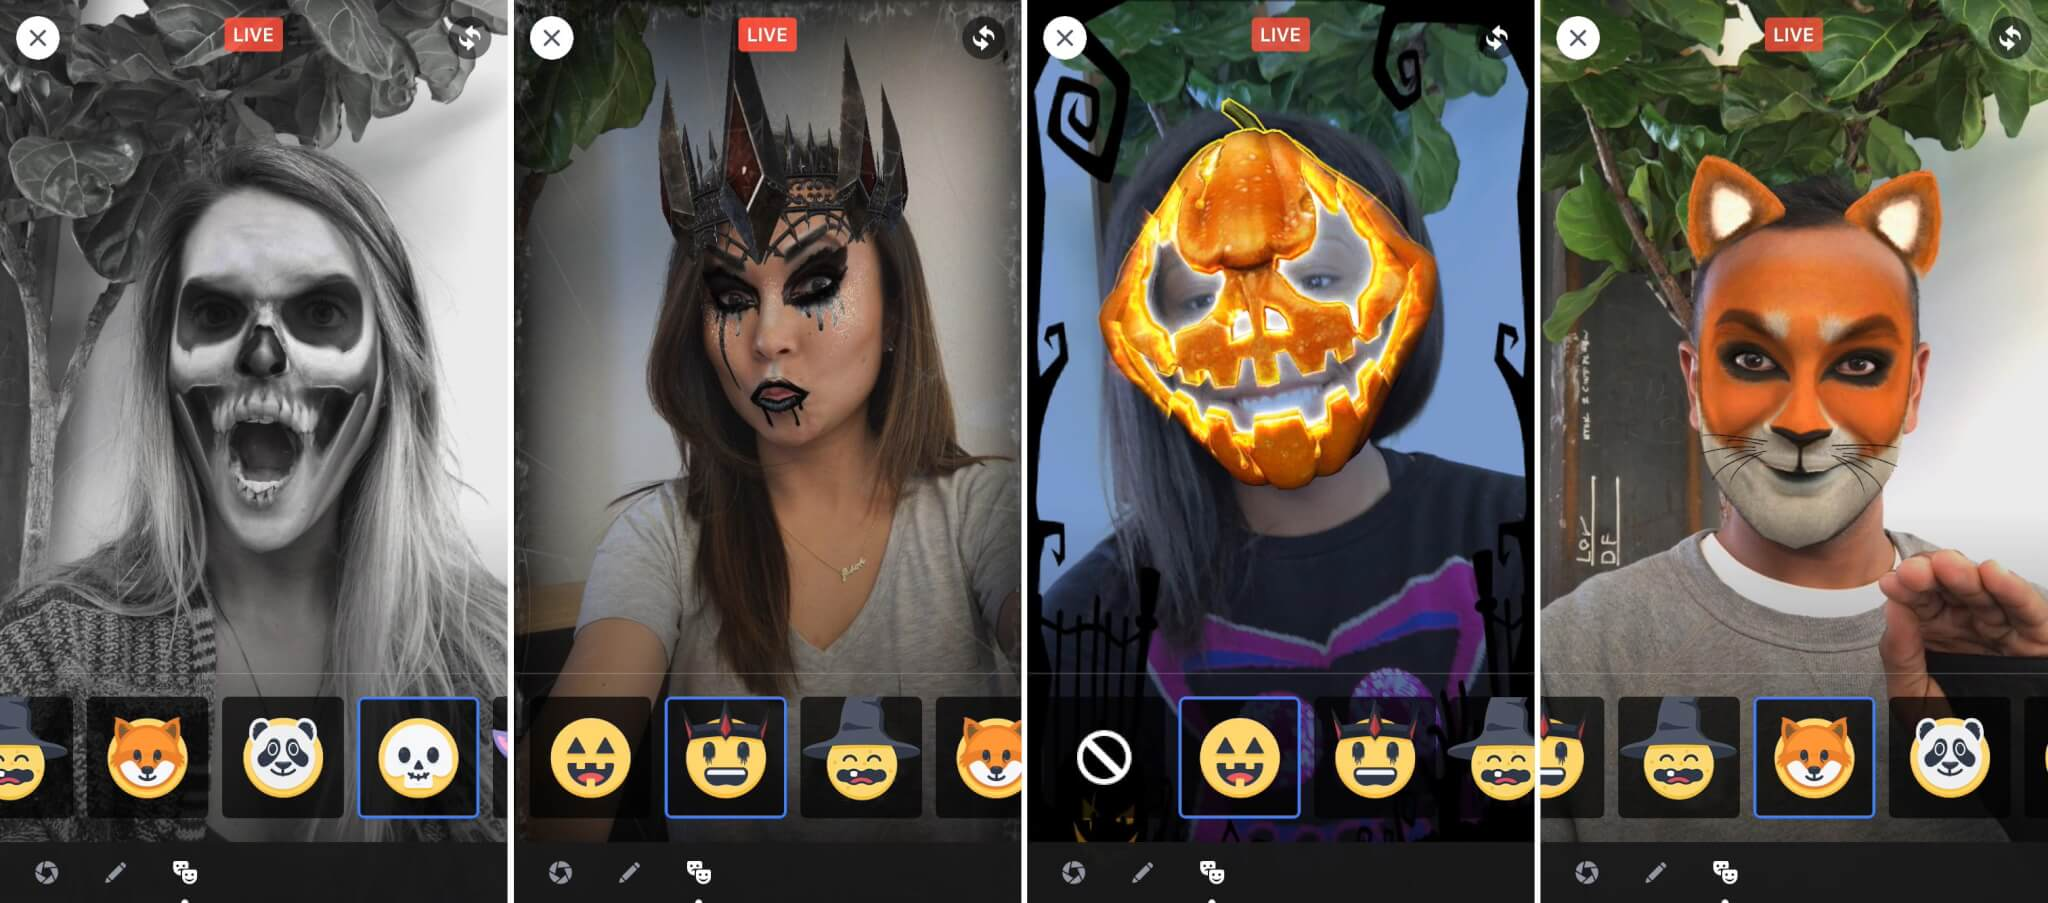 facebook-live-masks-2